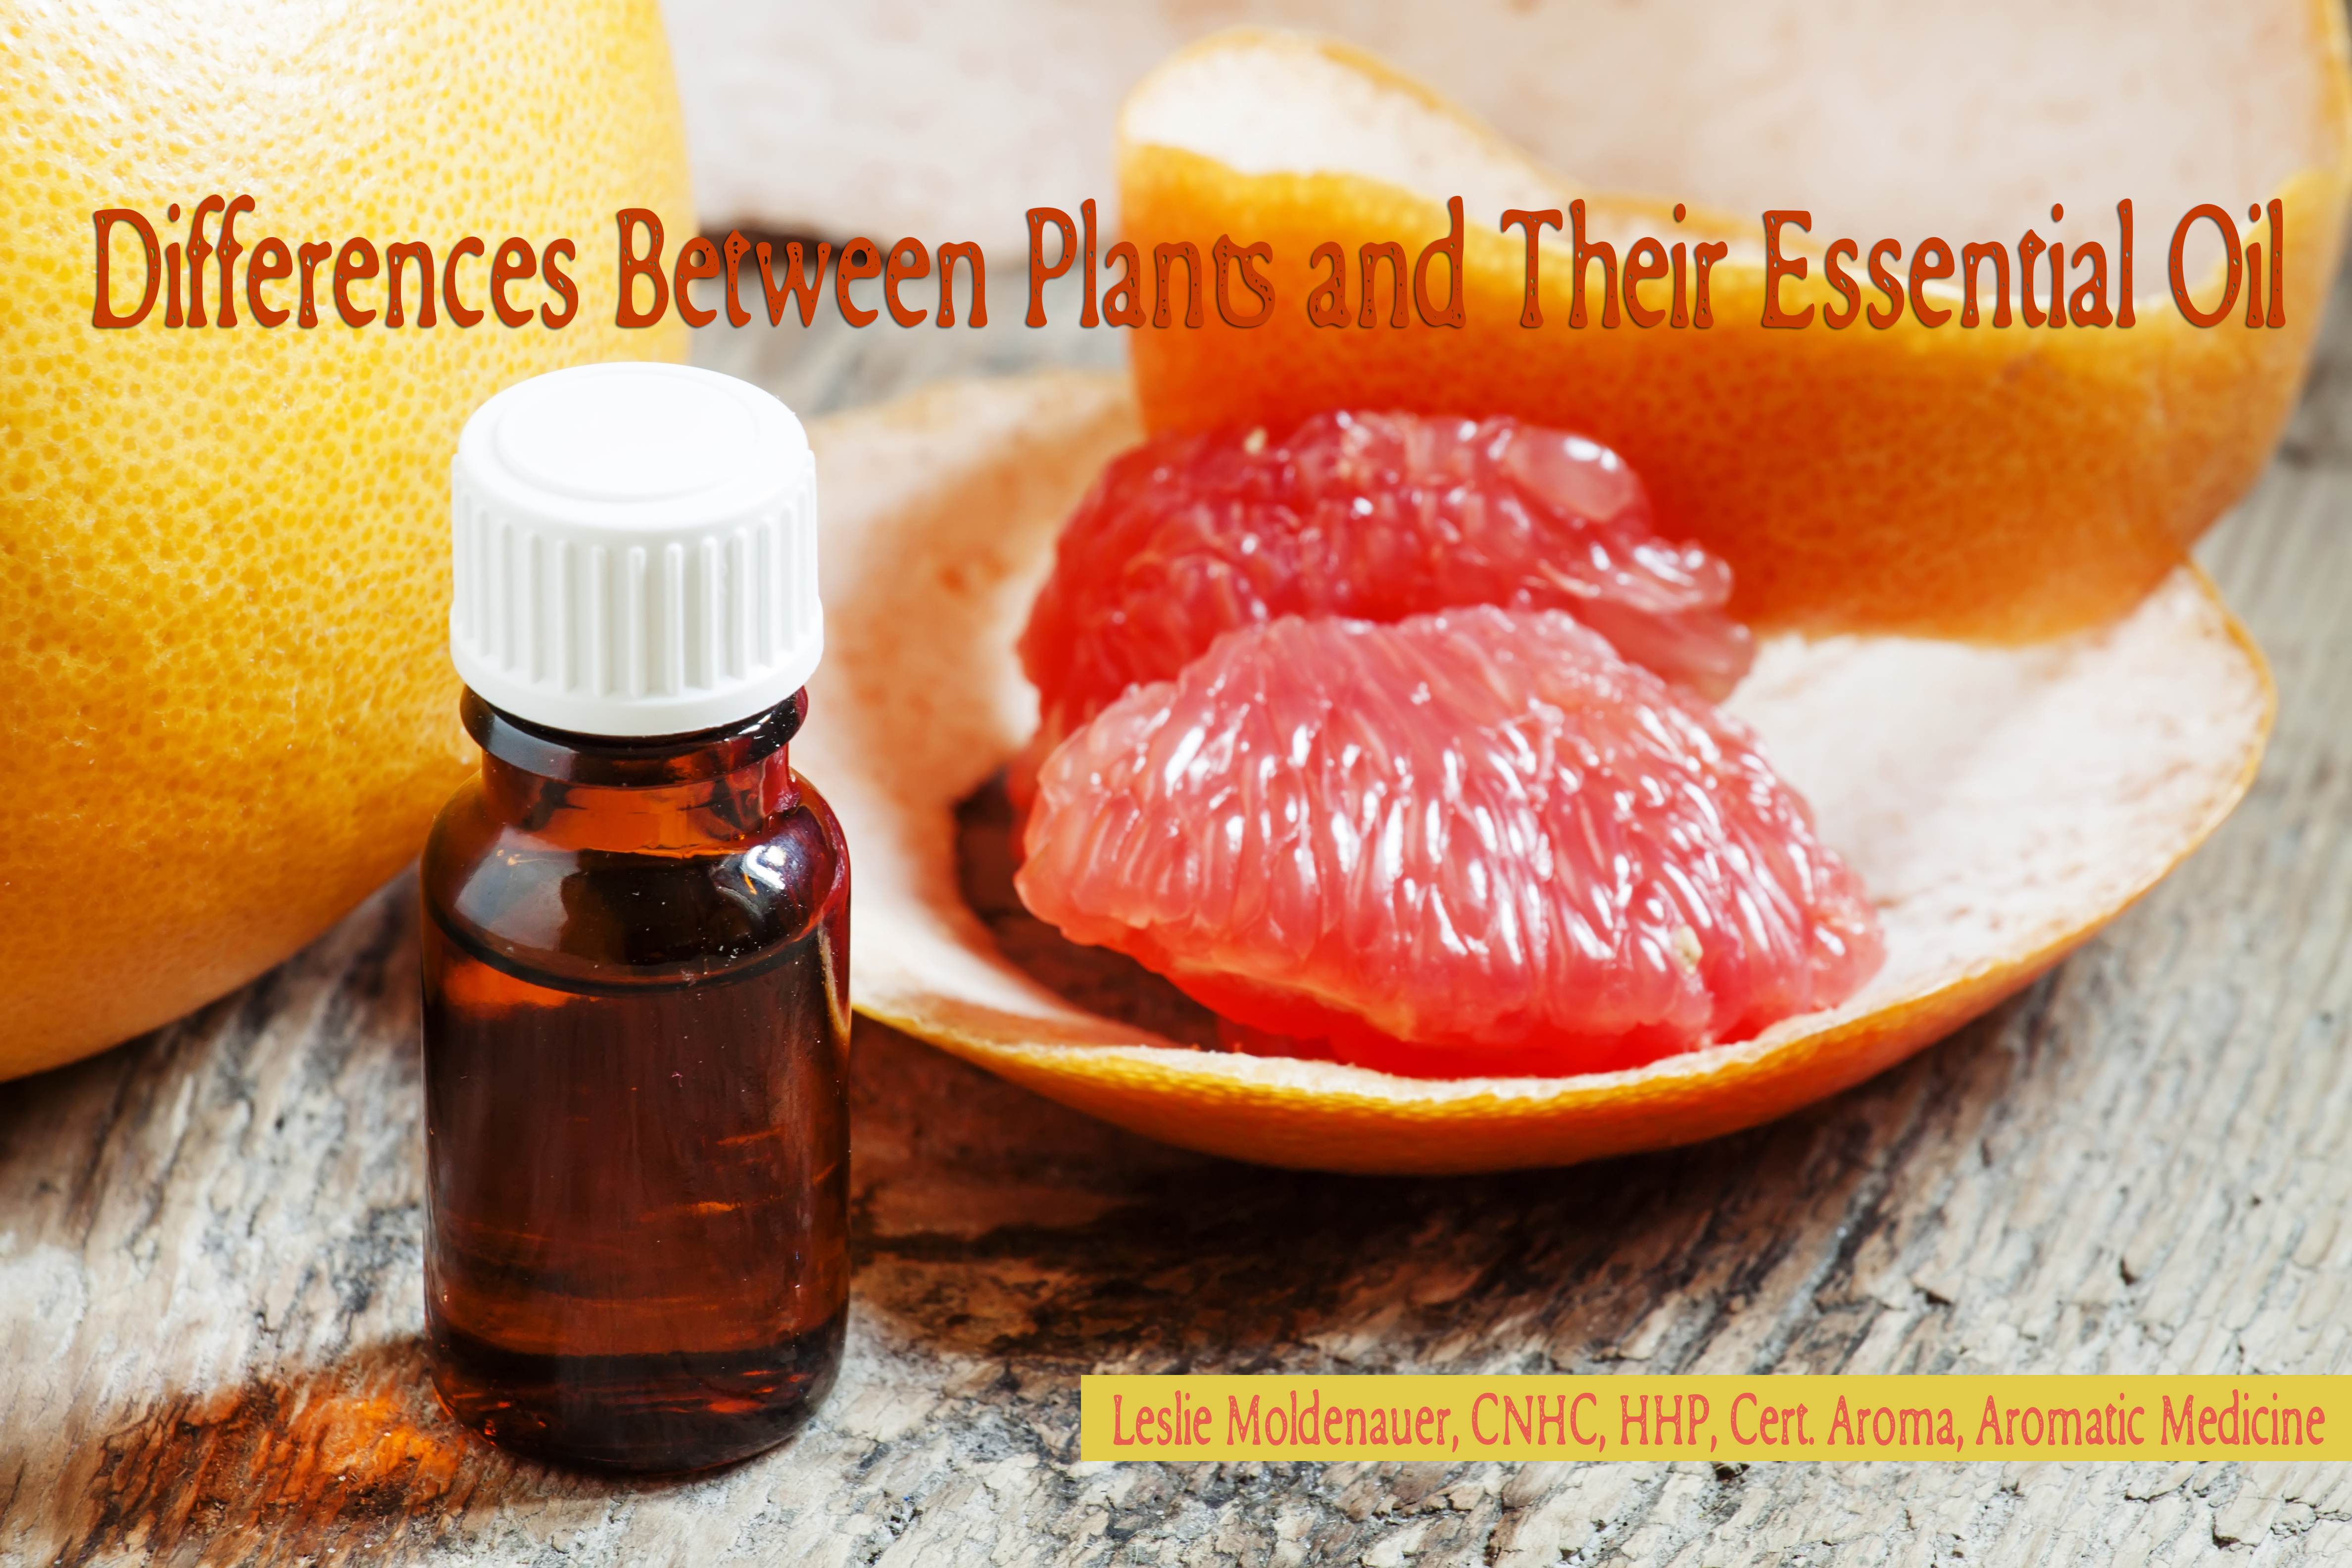 Differences Between Plants and Their Essential Oil